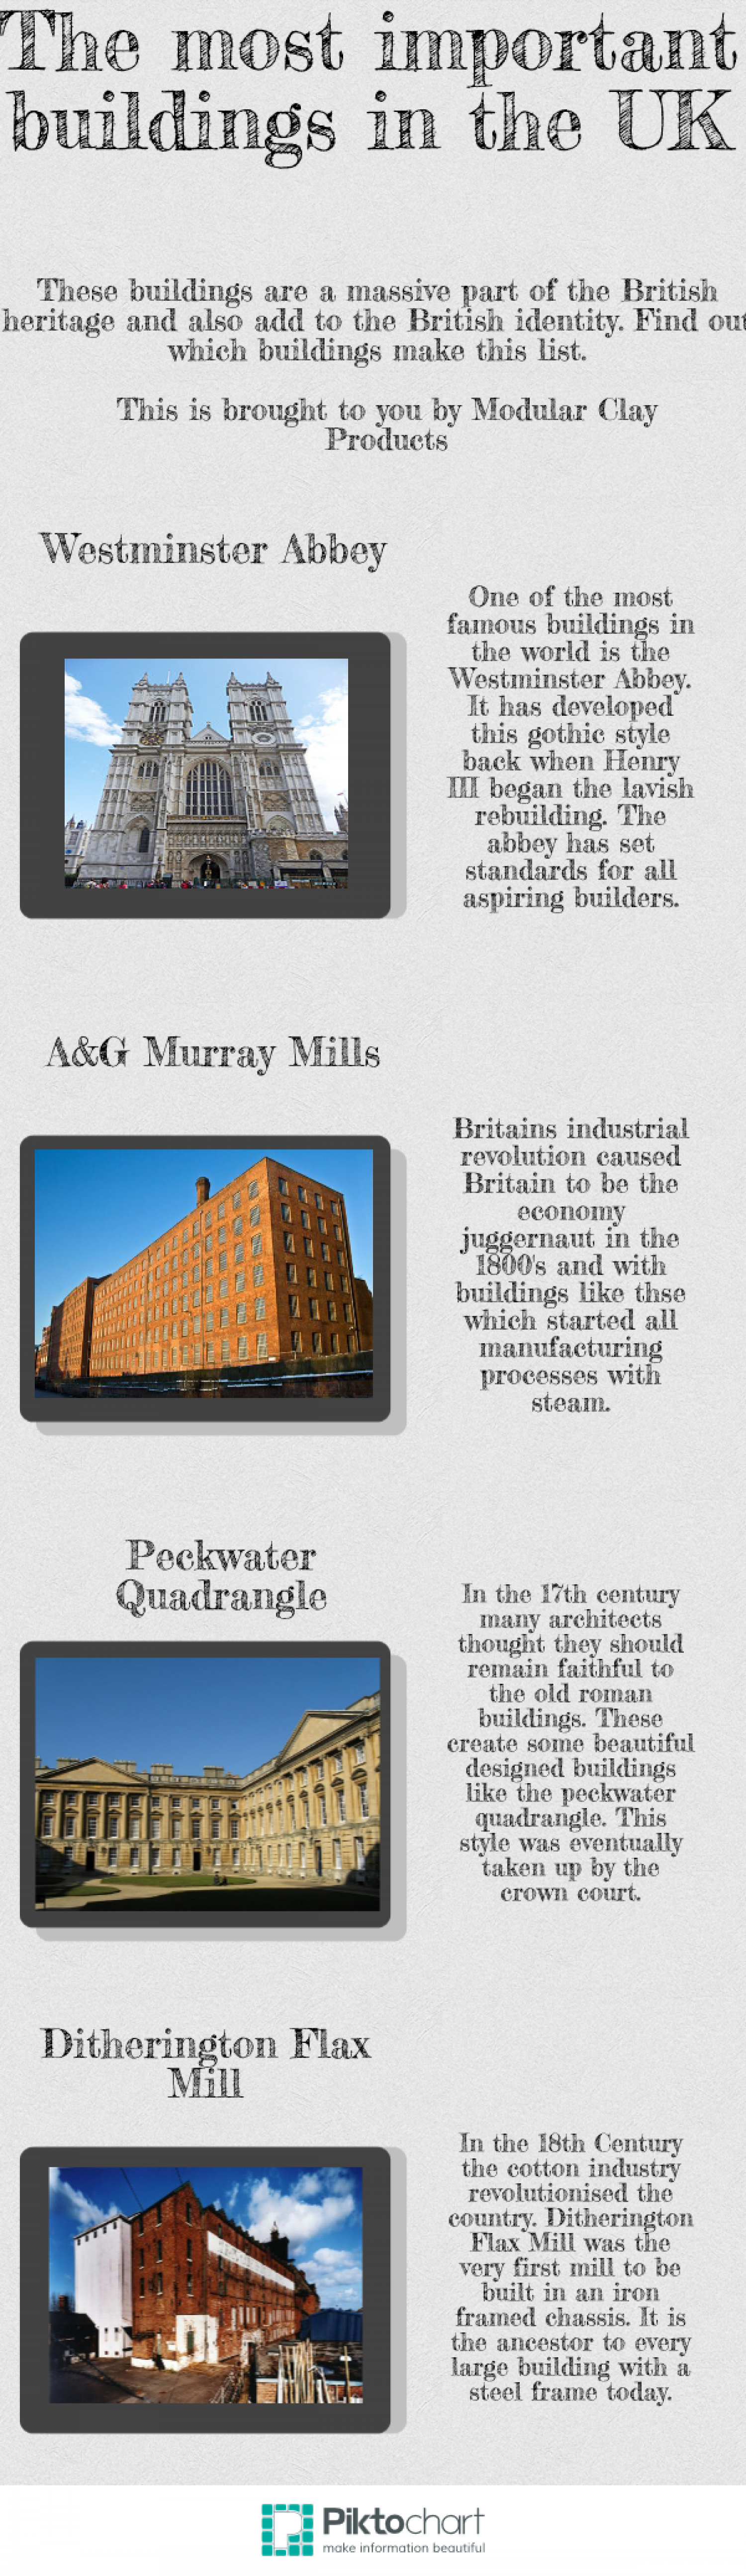 The most important buildings in the UK Infographic